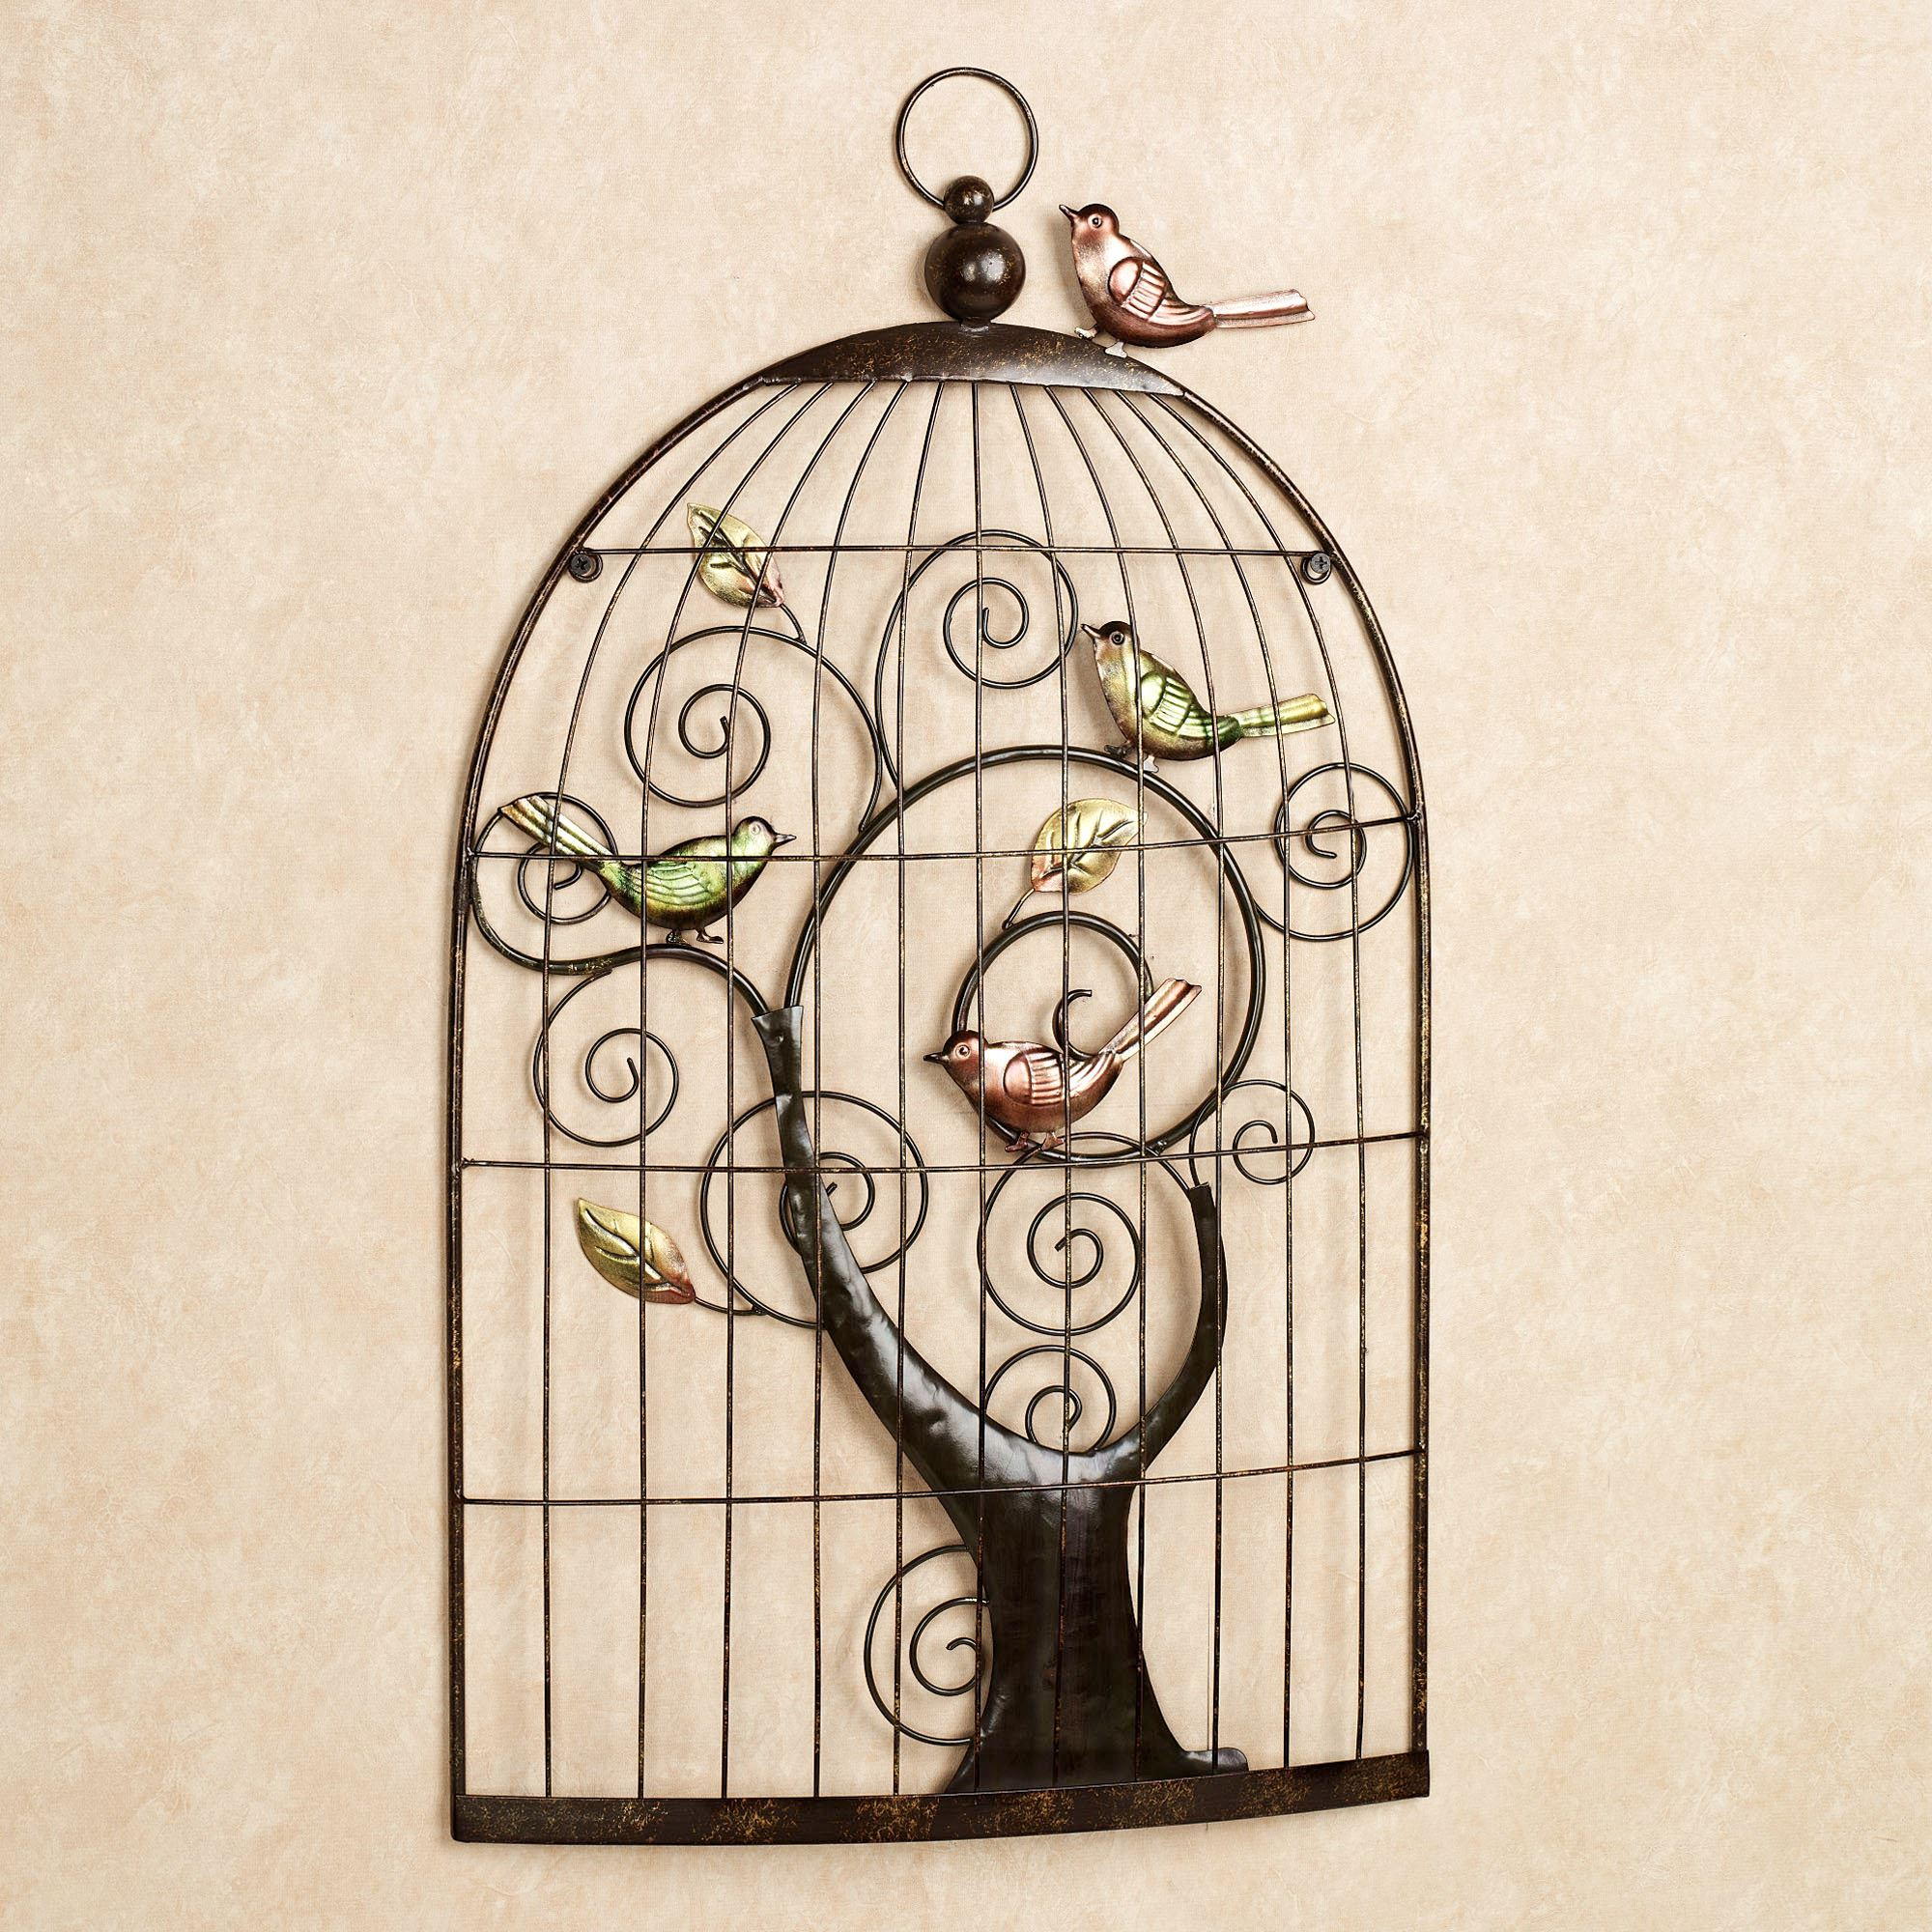 Enchanting Sonnet Birdcage Metal Wall Art Bronze Touch To Zoom